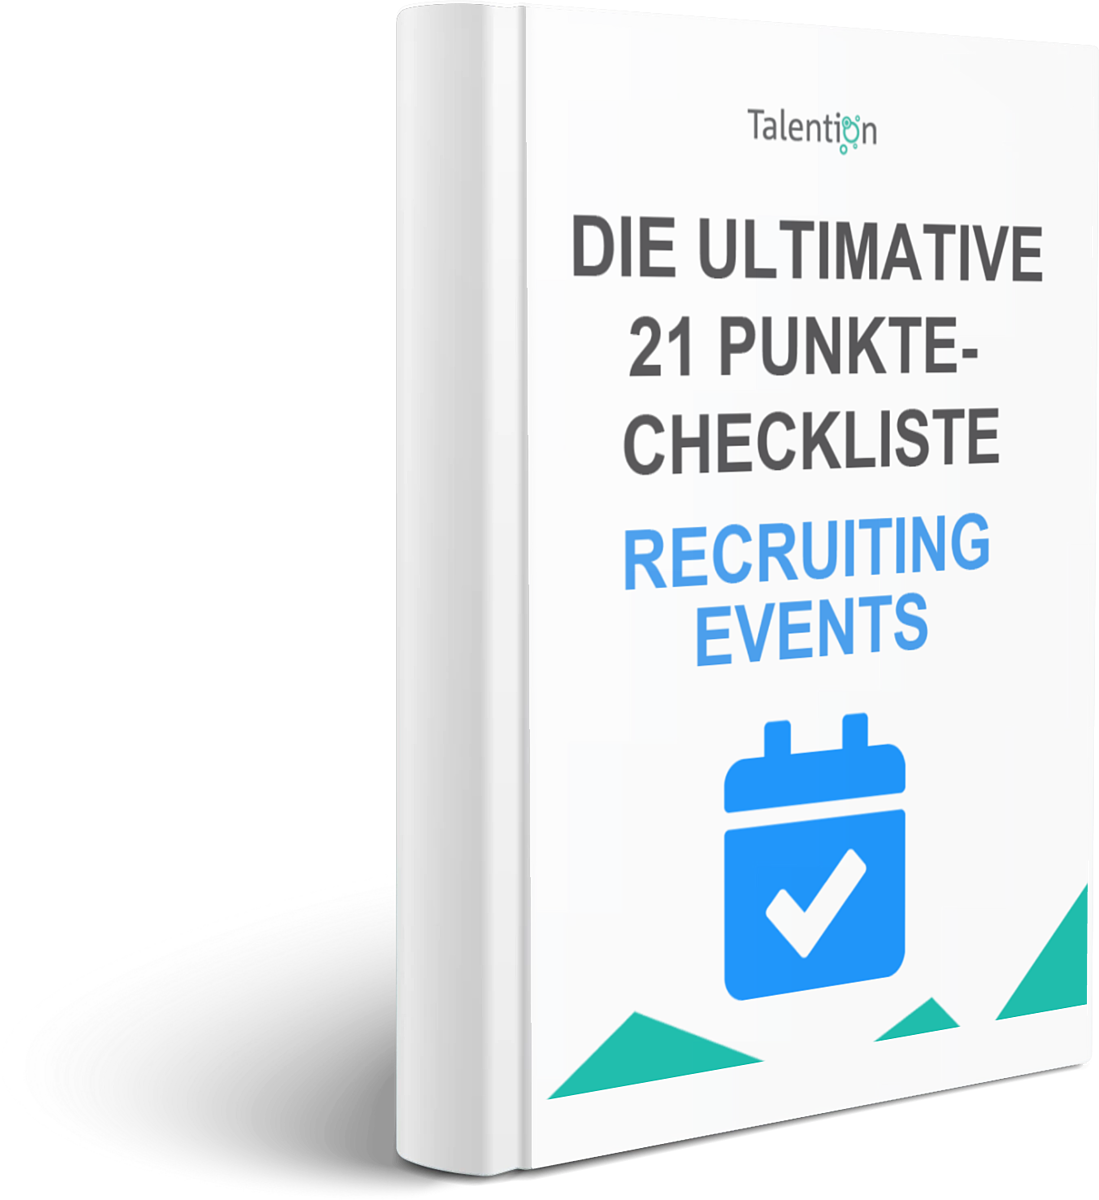 Checkliste Recruiting Events kostenlos